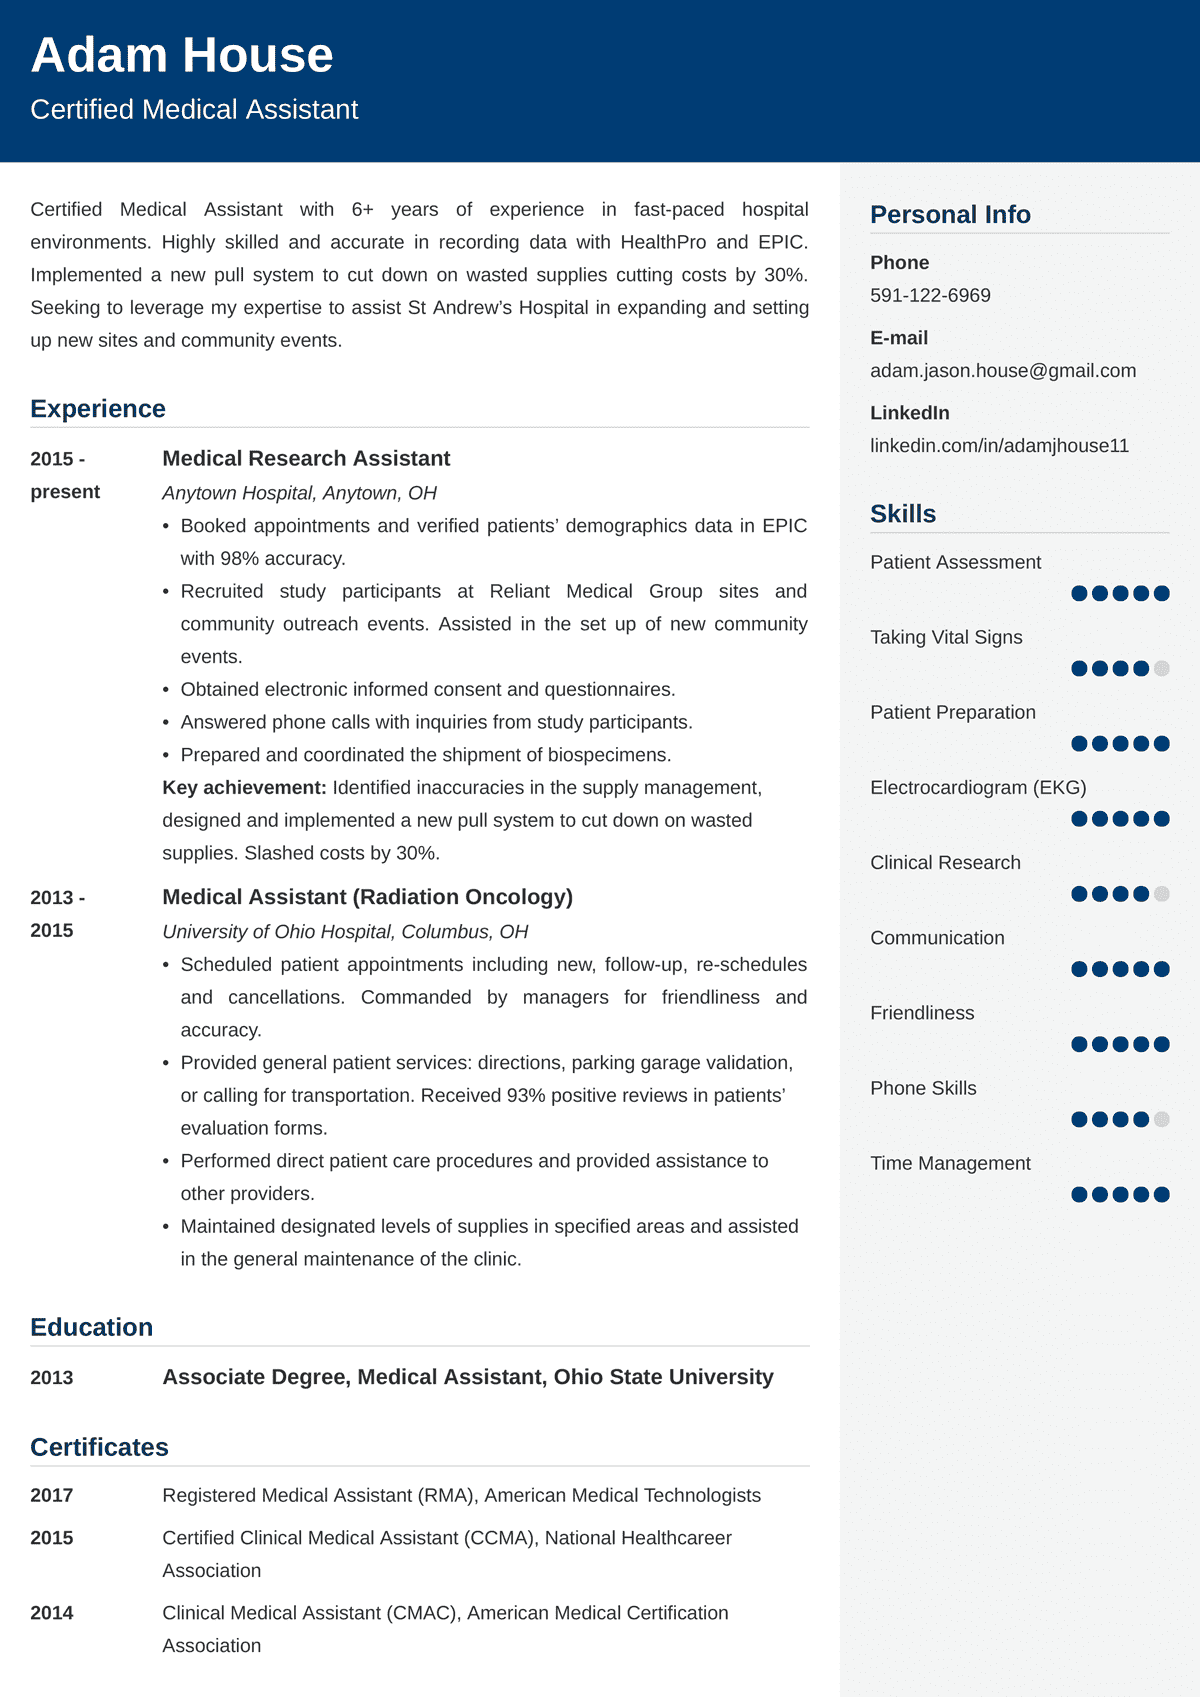 medical assistant resume sample—25 examples and writing tips